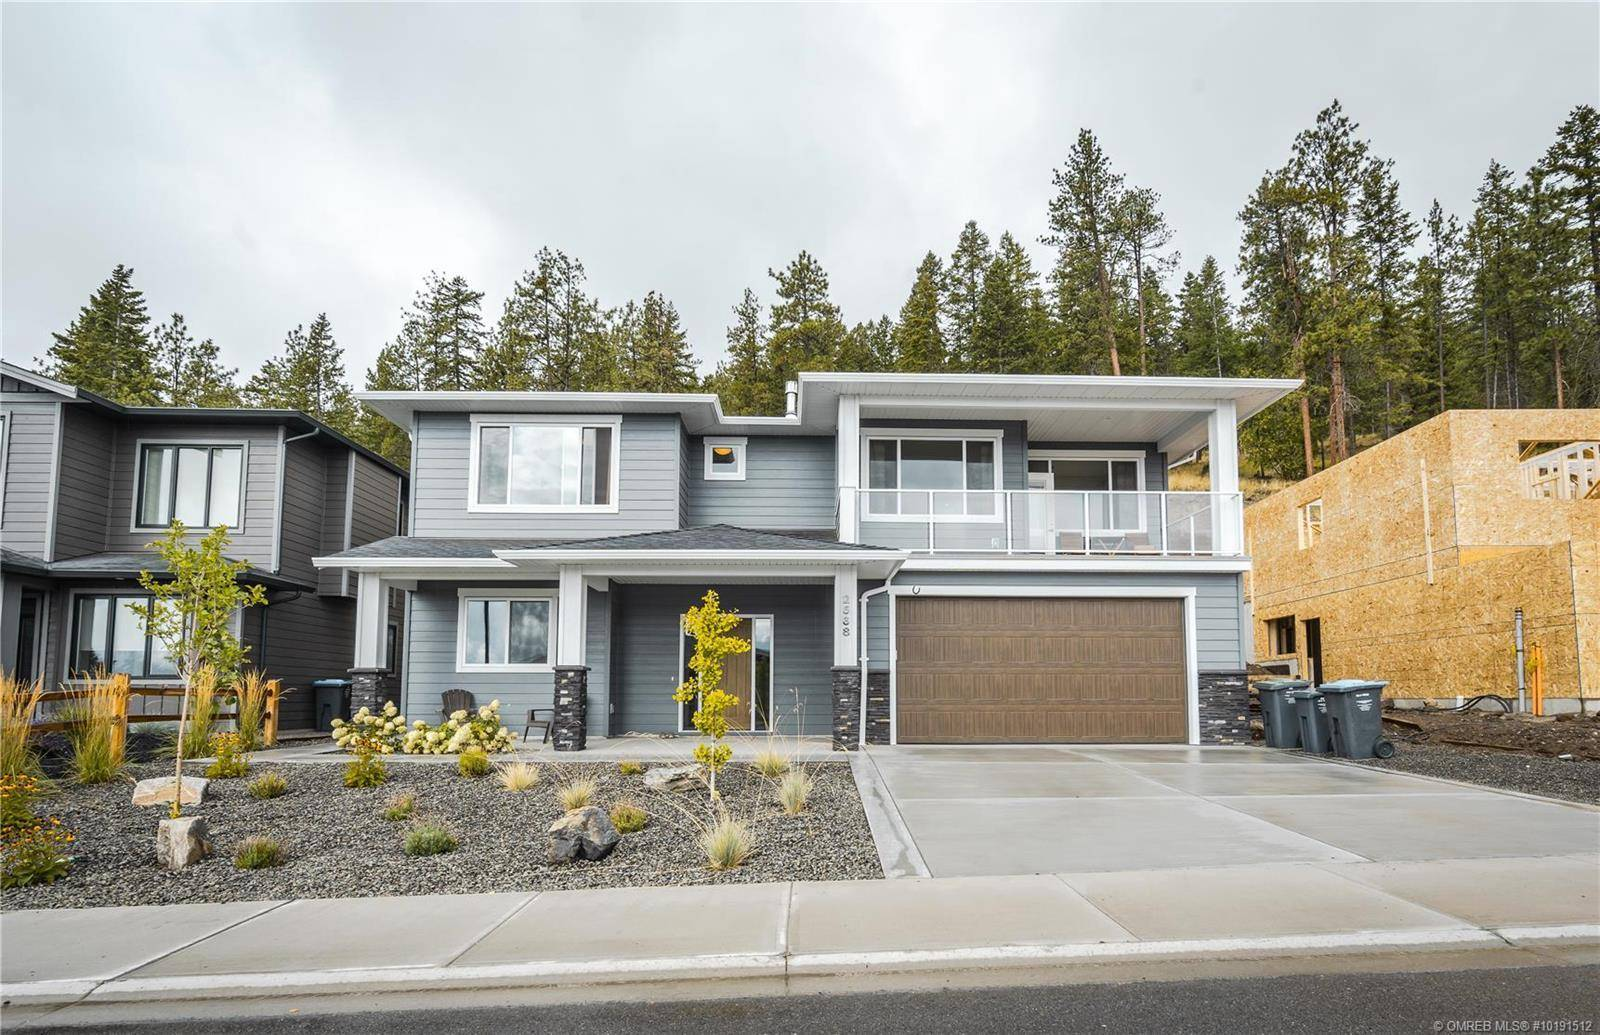 House for sale at 2568 Crown Crest Dr West Kelowna British Columbia - MLS: 10191512